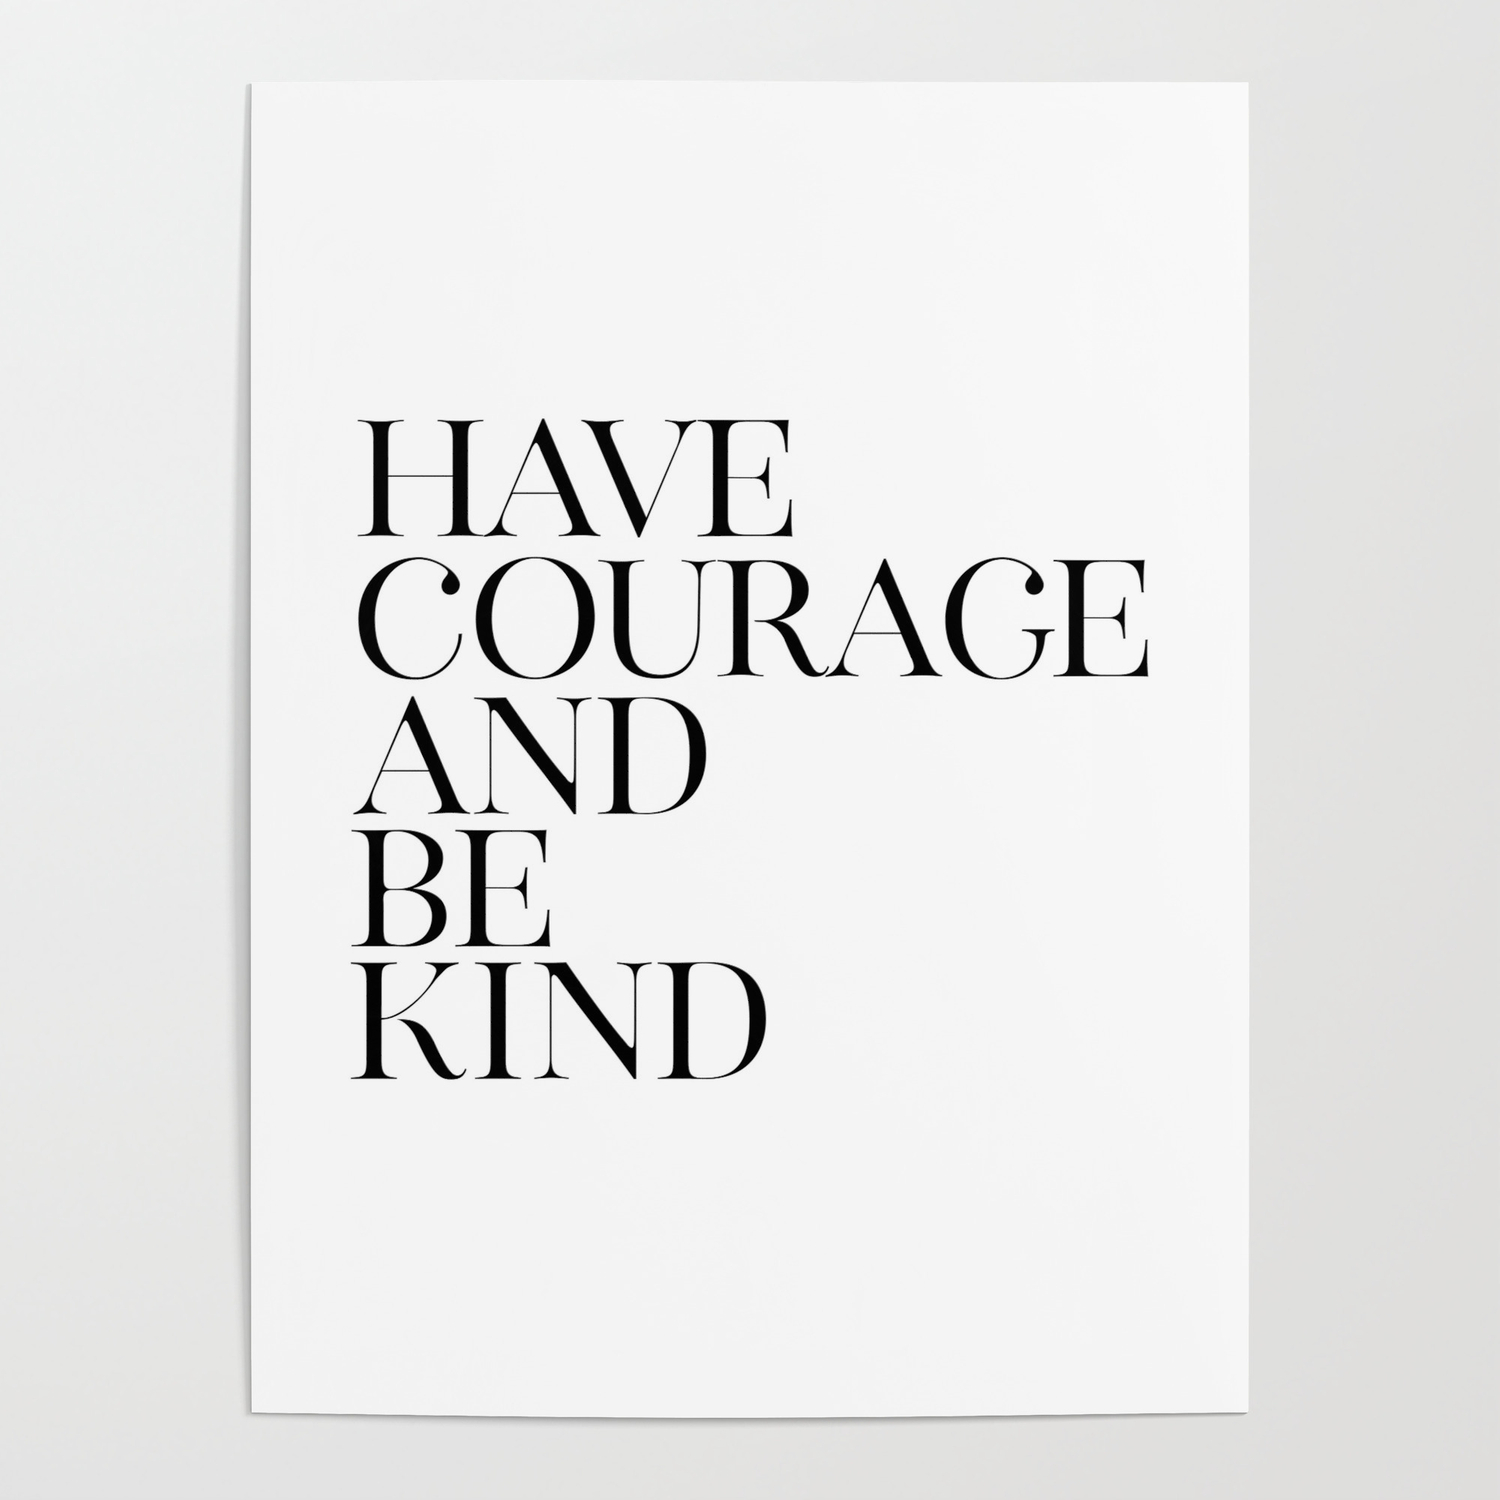 picture relating to Have Courage and Be Kind Printable referred to as Incorporate Braveness And Be Form, Black White Artwork, House Decor, Printable Artwork, Typography Quotation Poster through printableartsy